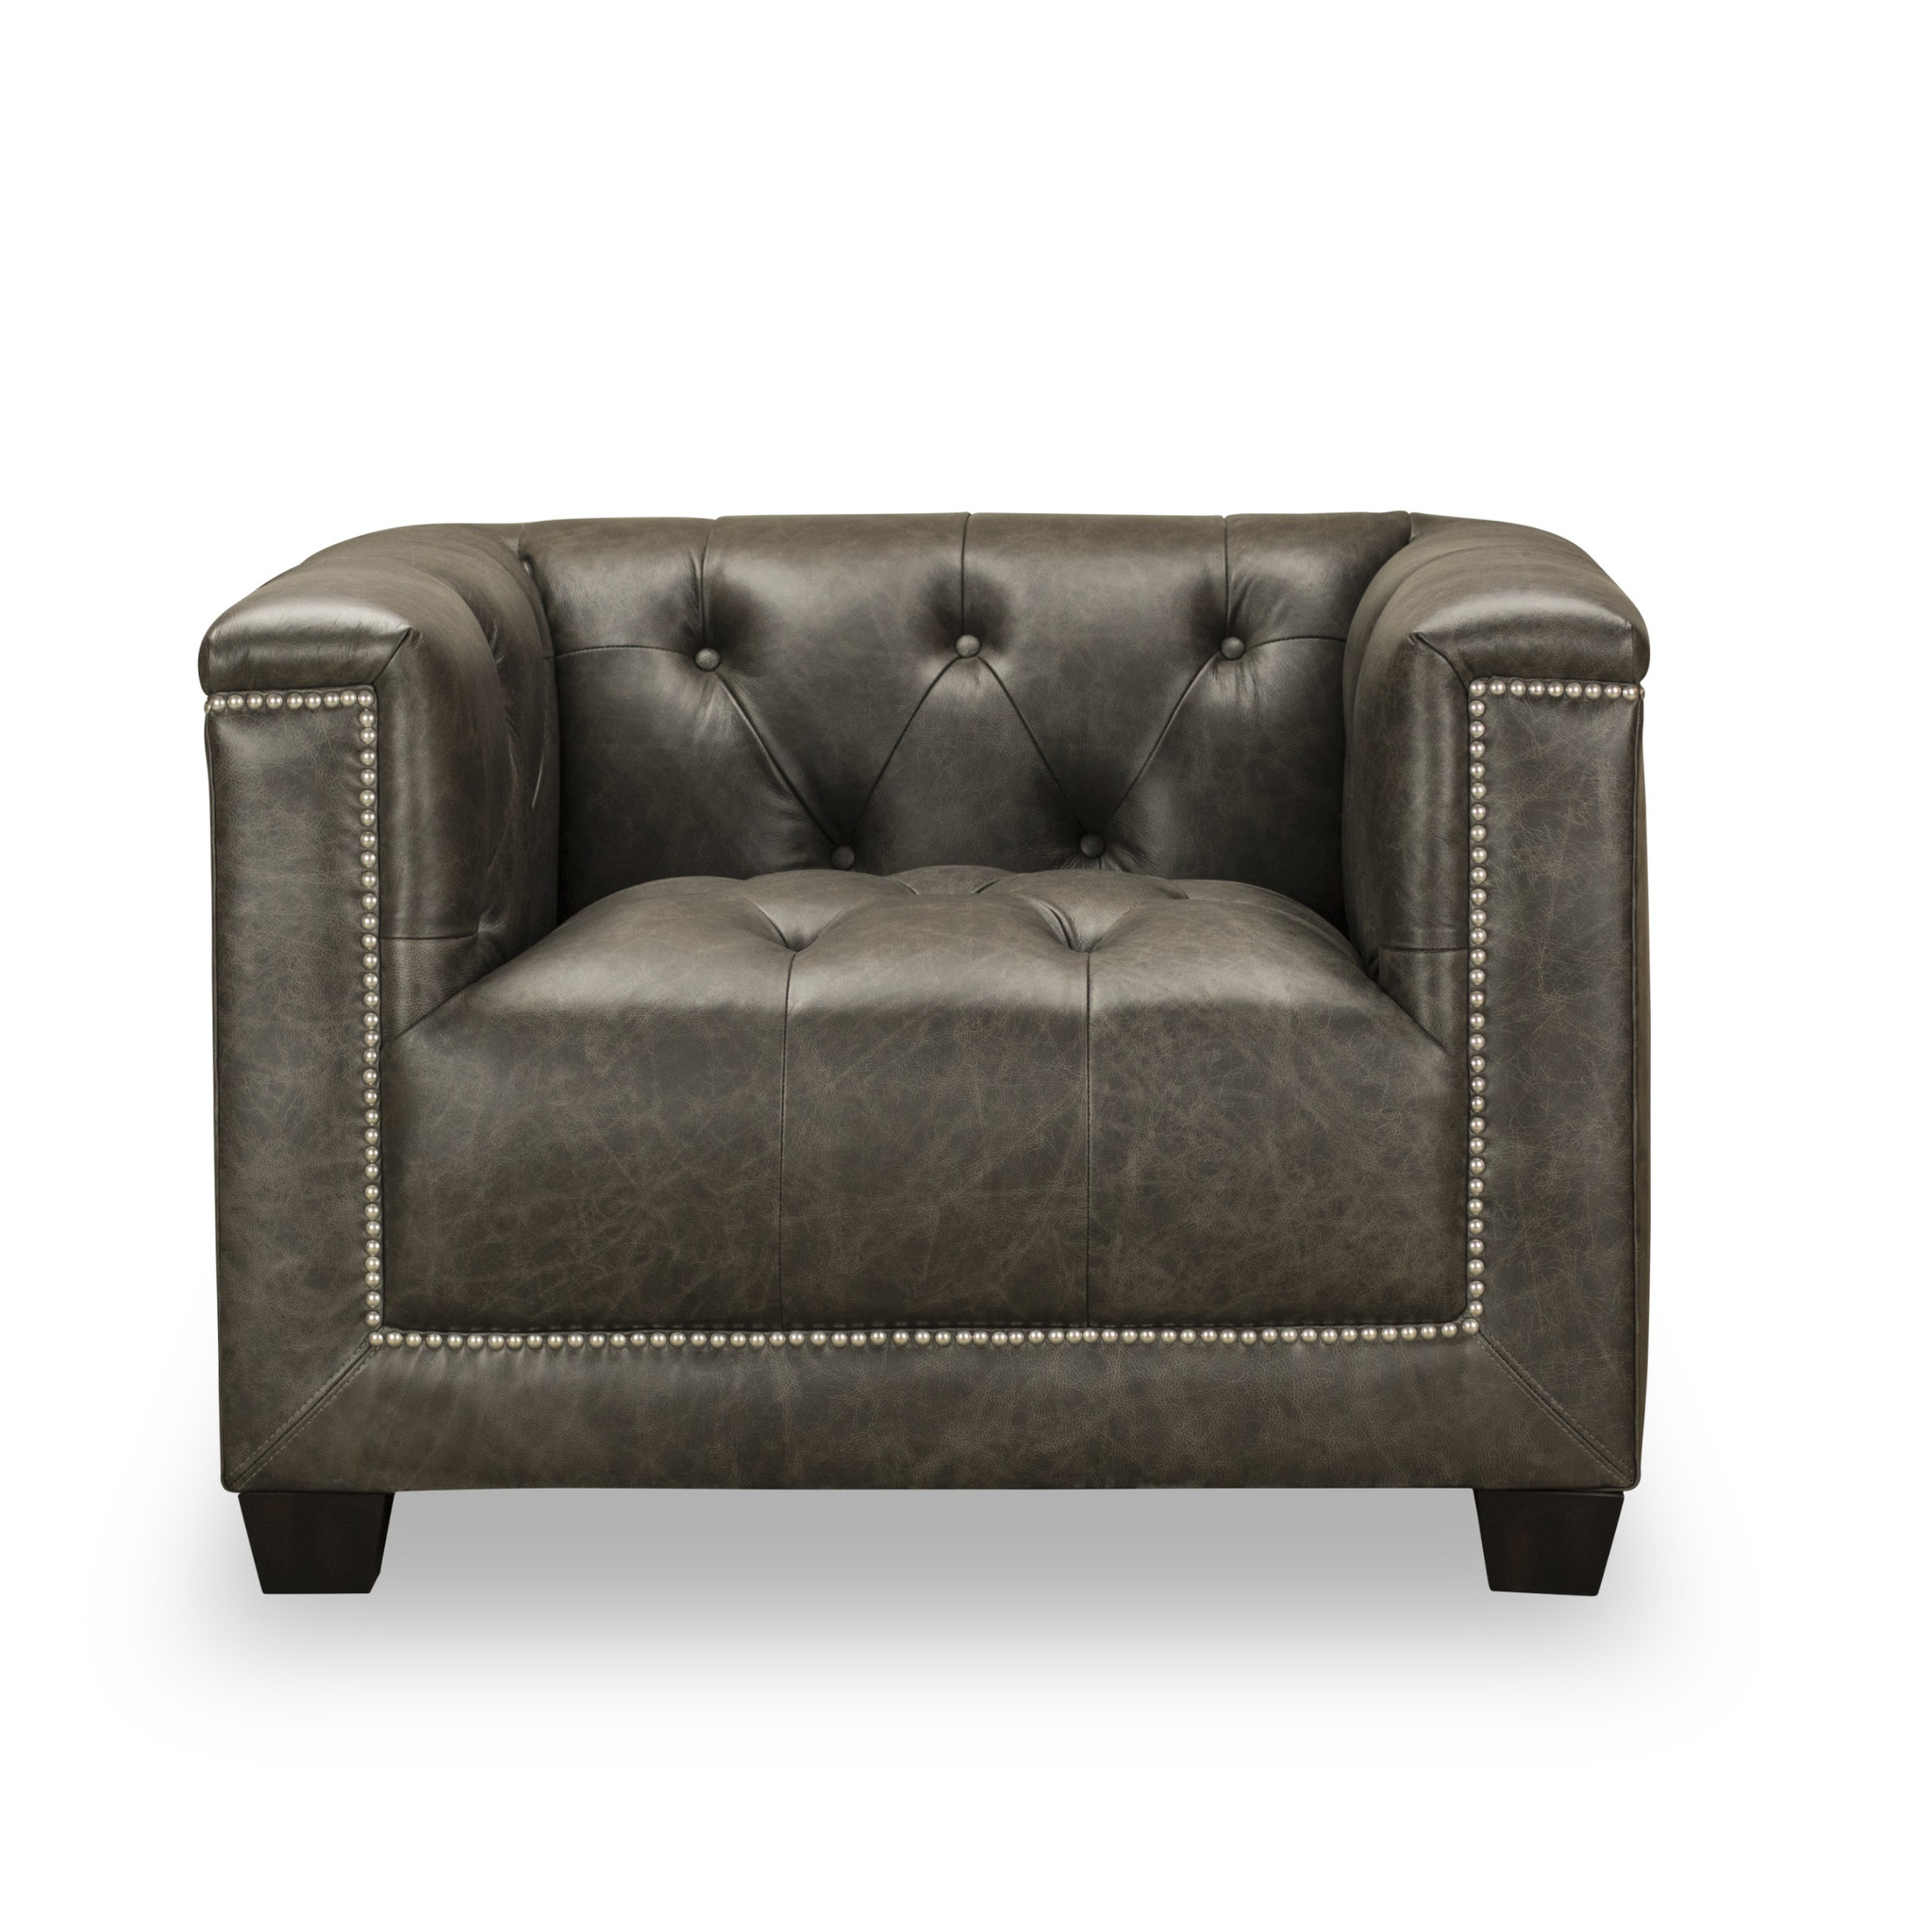 Grey Tufted Chair | Tufted Seat | Tufted Chair